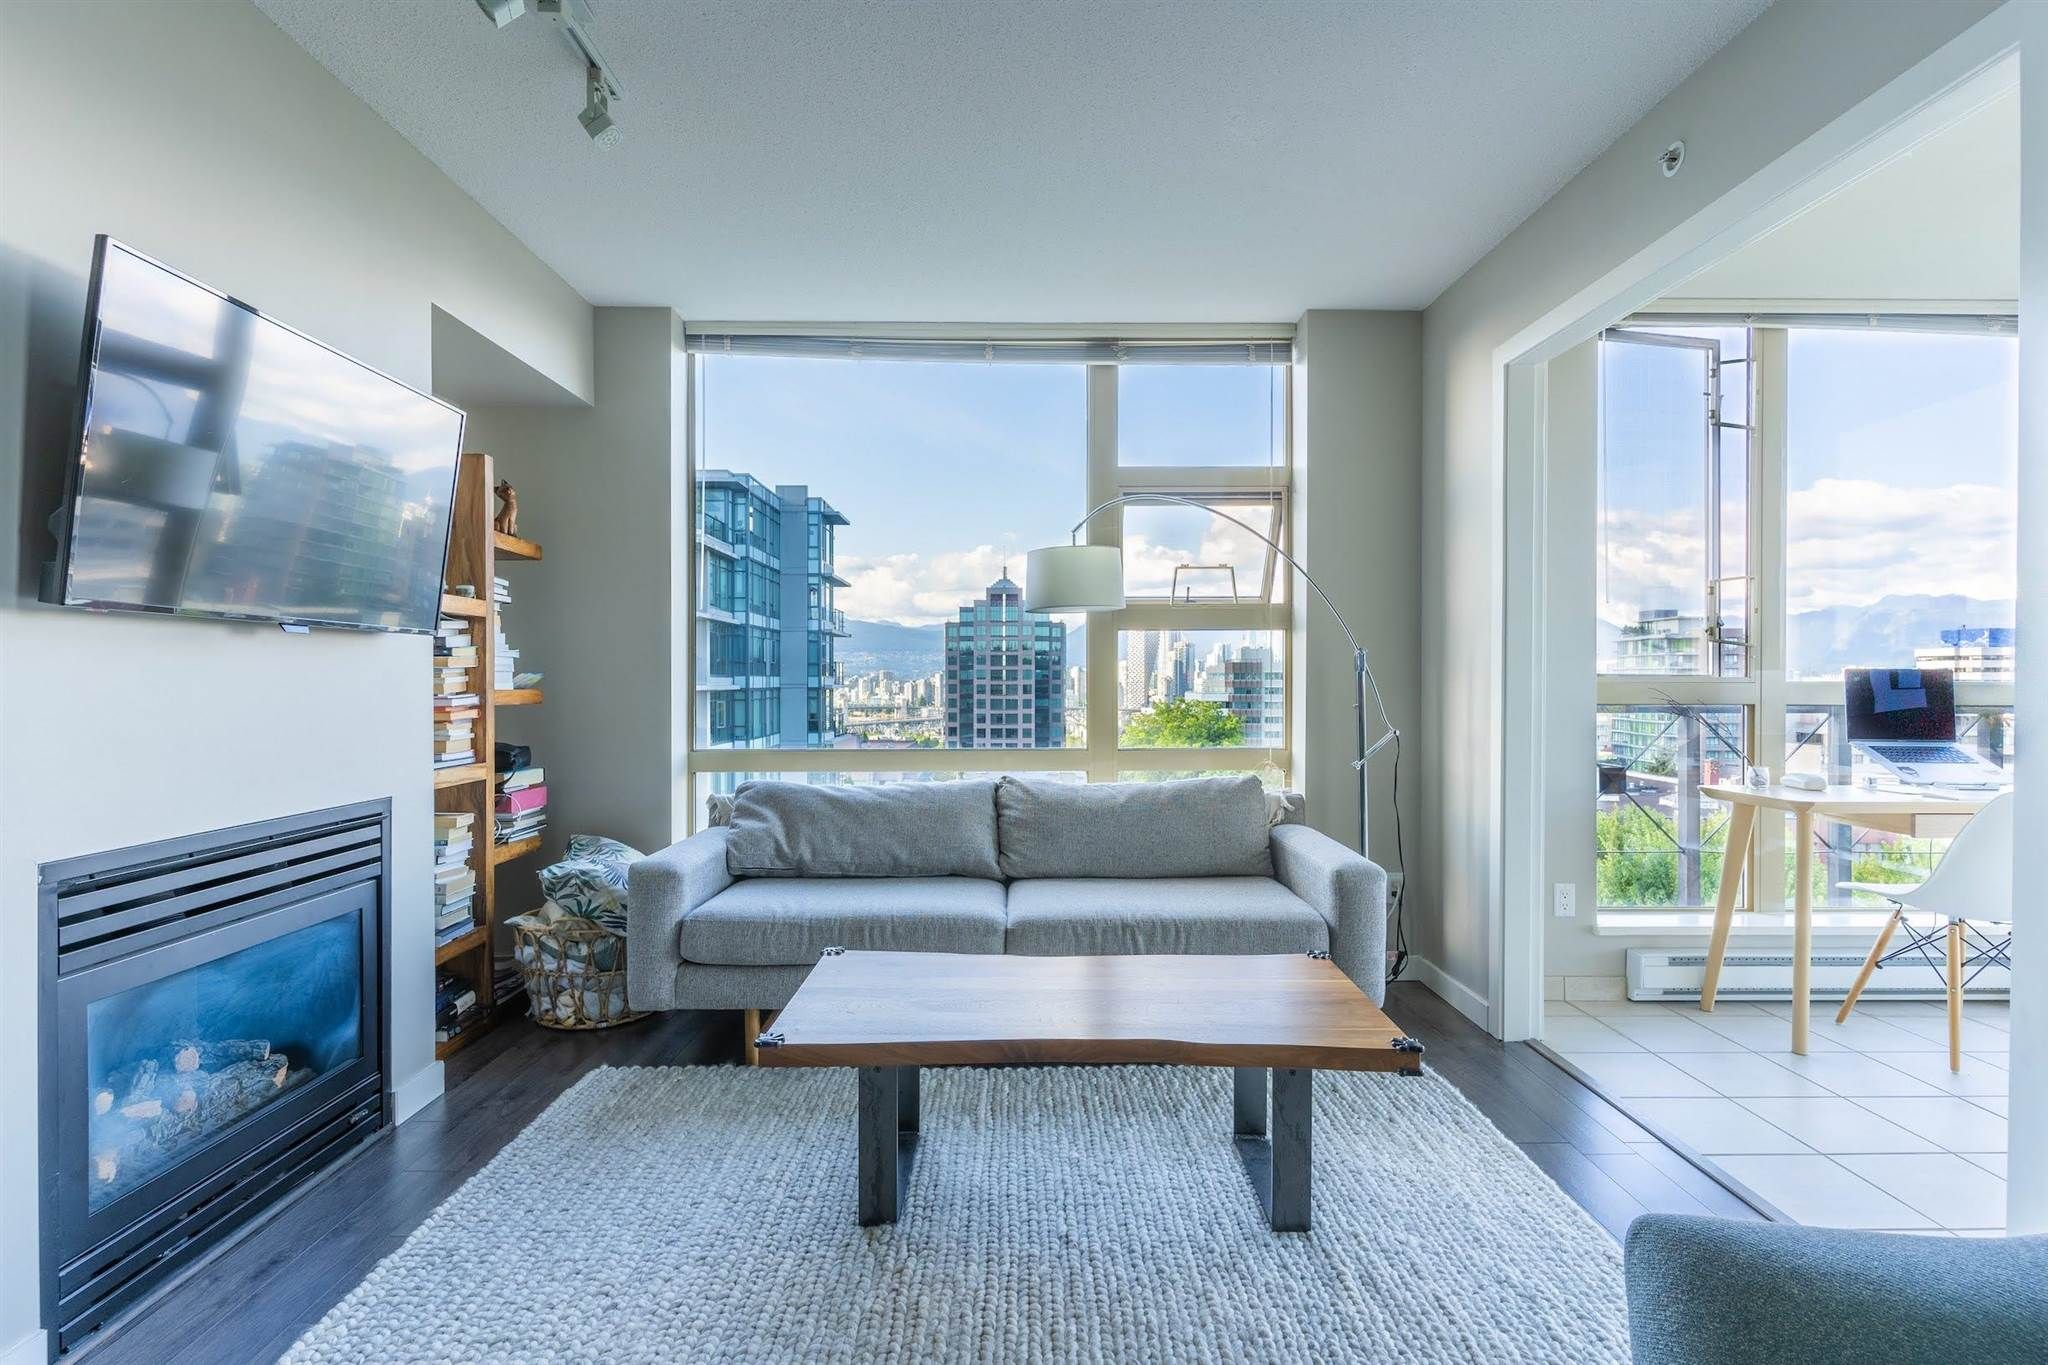 Main Photo: 1005 1316 W 11TH AVENUE in Vancouver: Fairview VW Condo for sale (Vancouver West)  : MLS®# R2603717